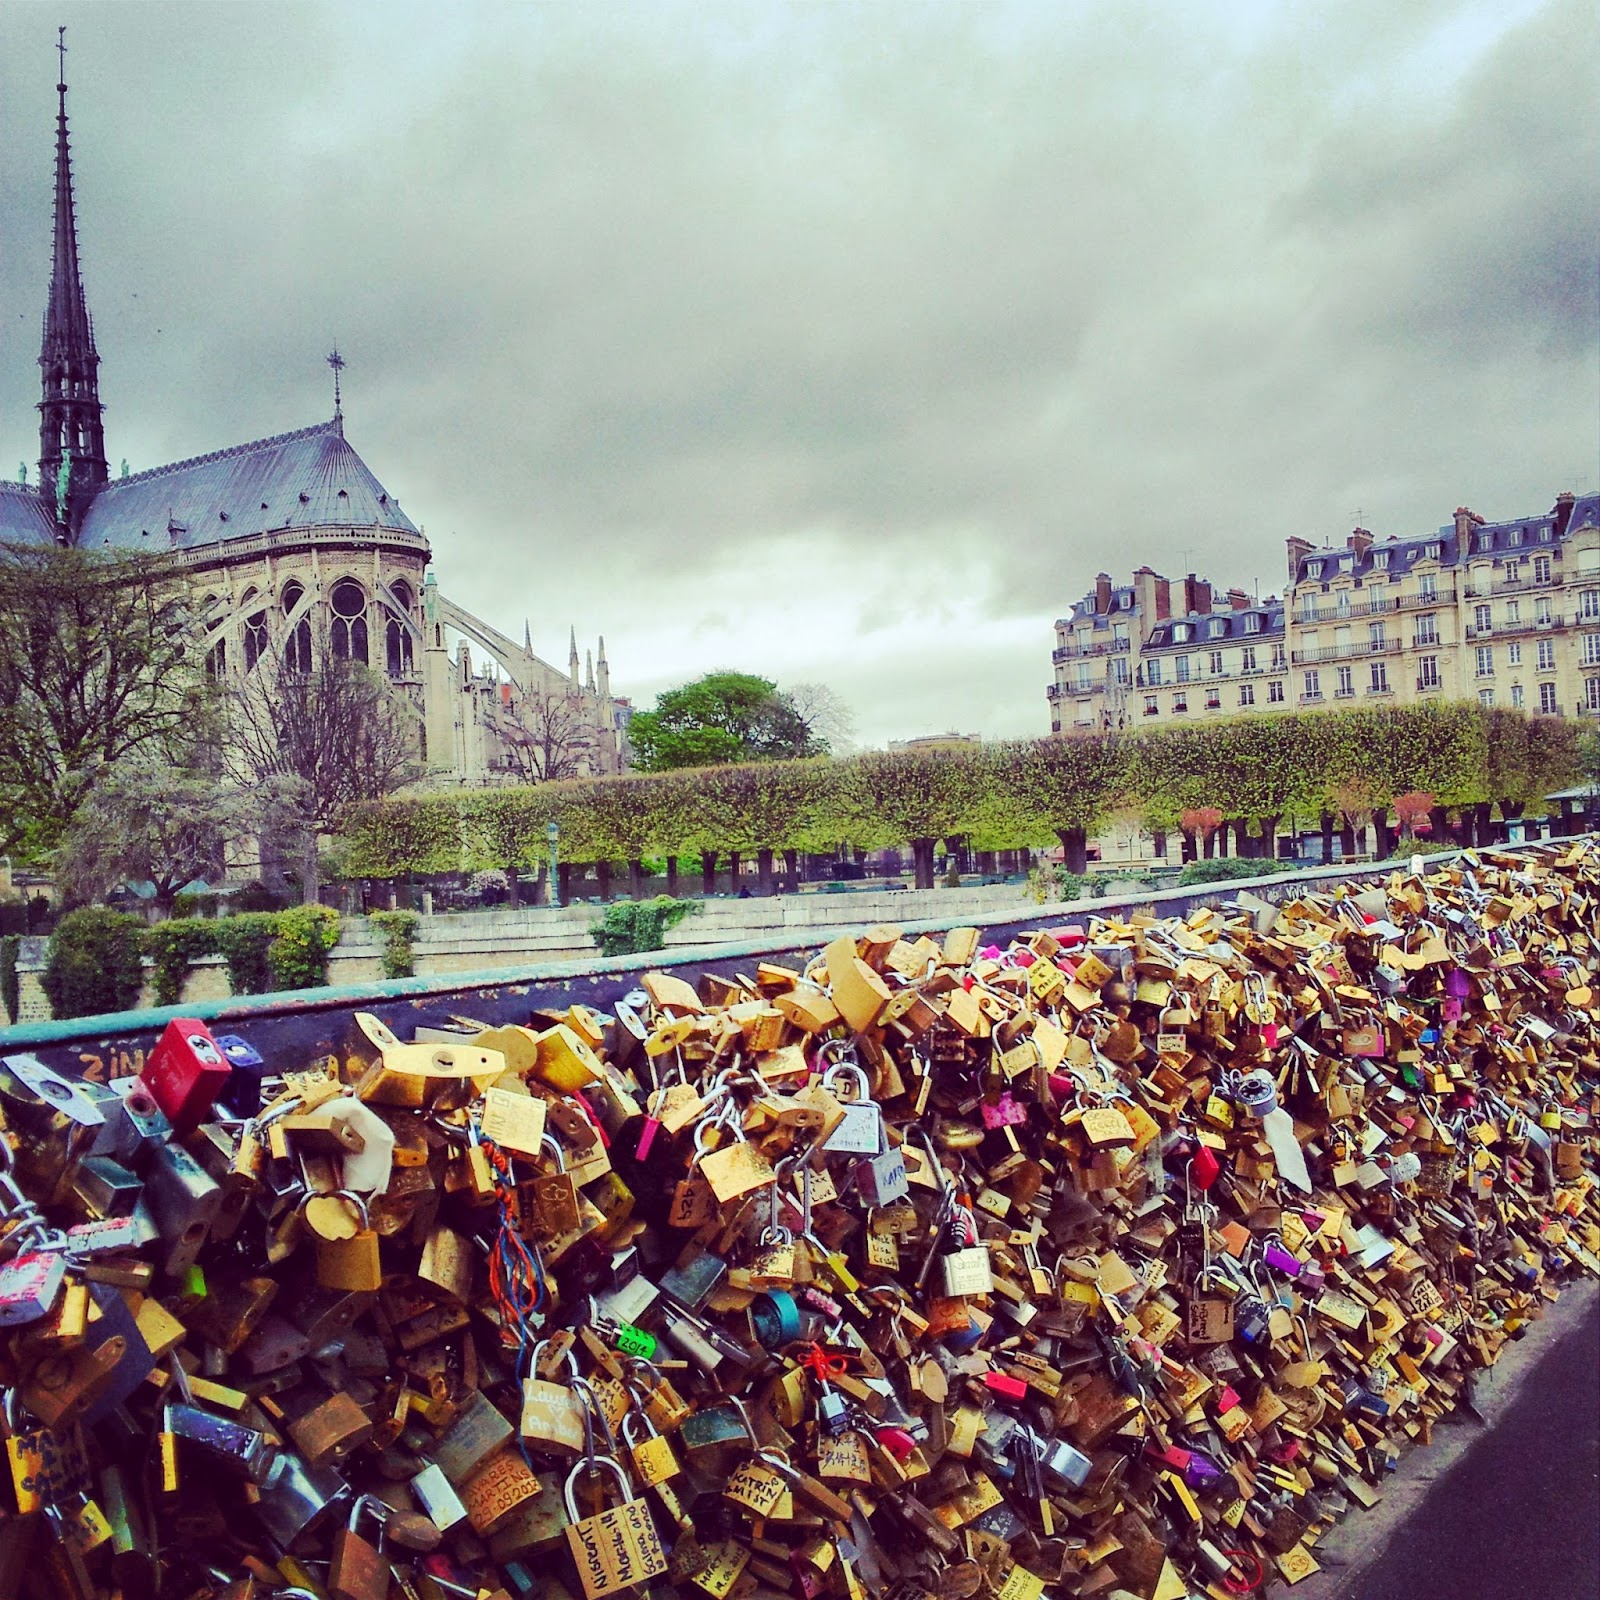 Paris, love locks